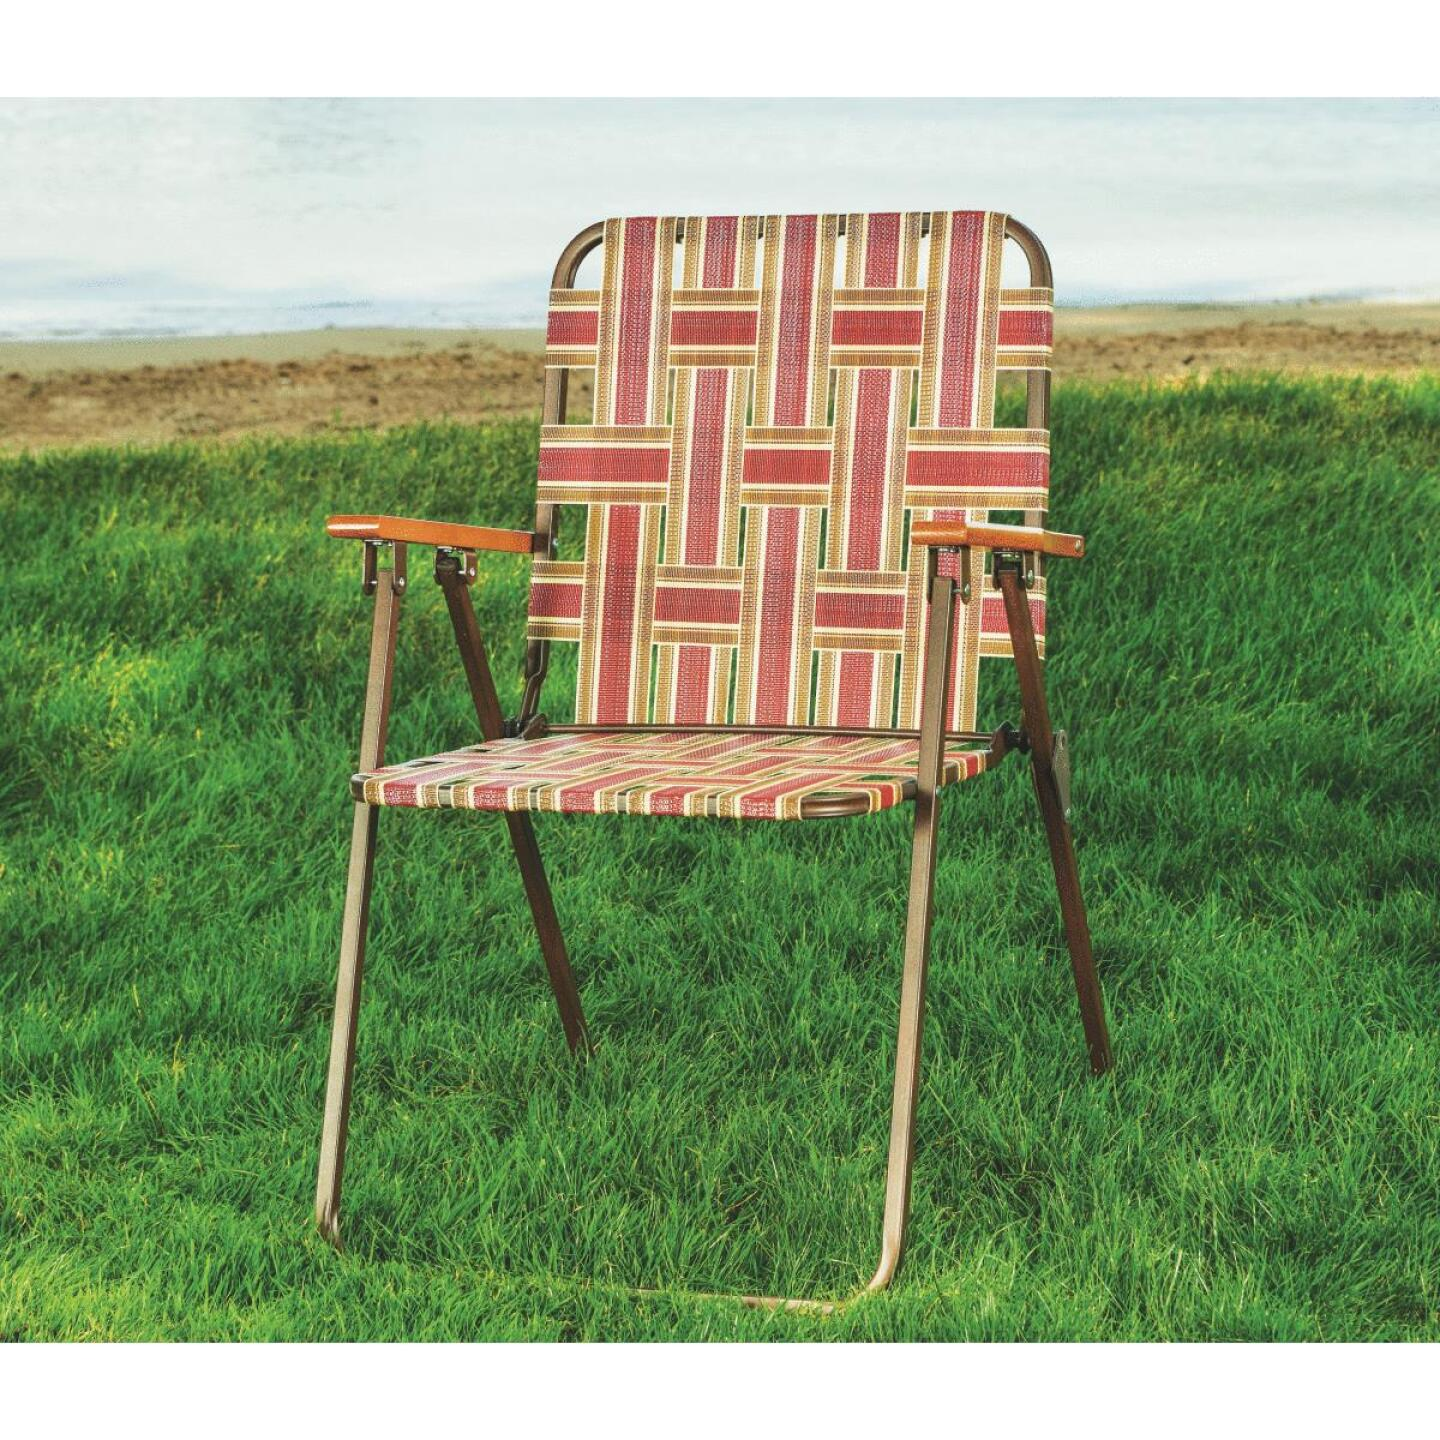 Outdoor Expressions Multi-Color Web Folding Chair Image 3